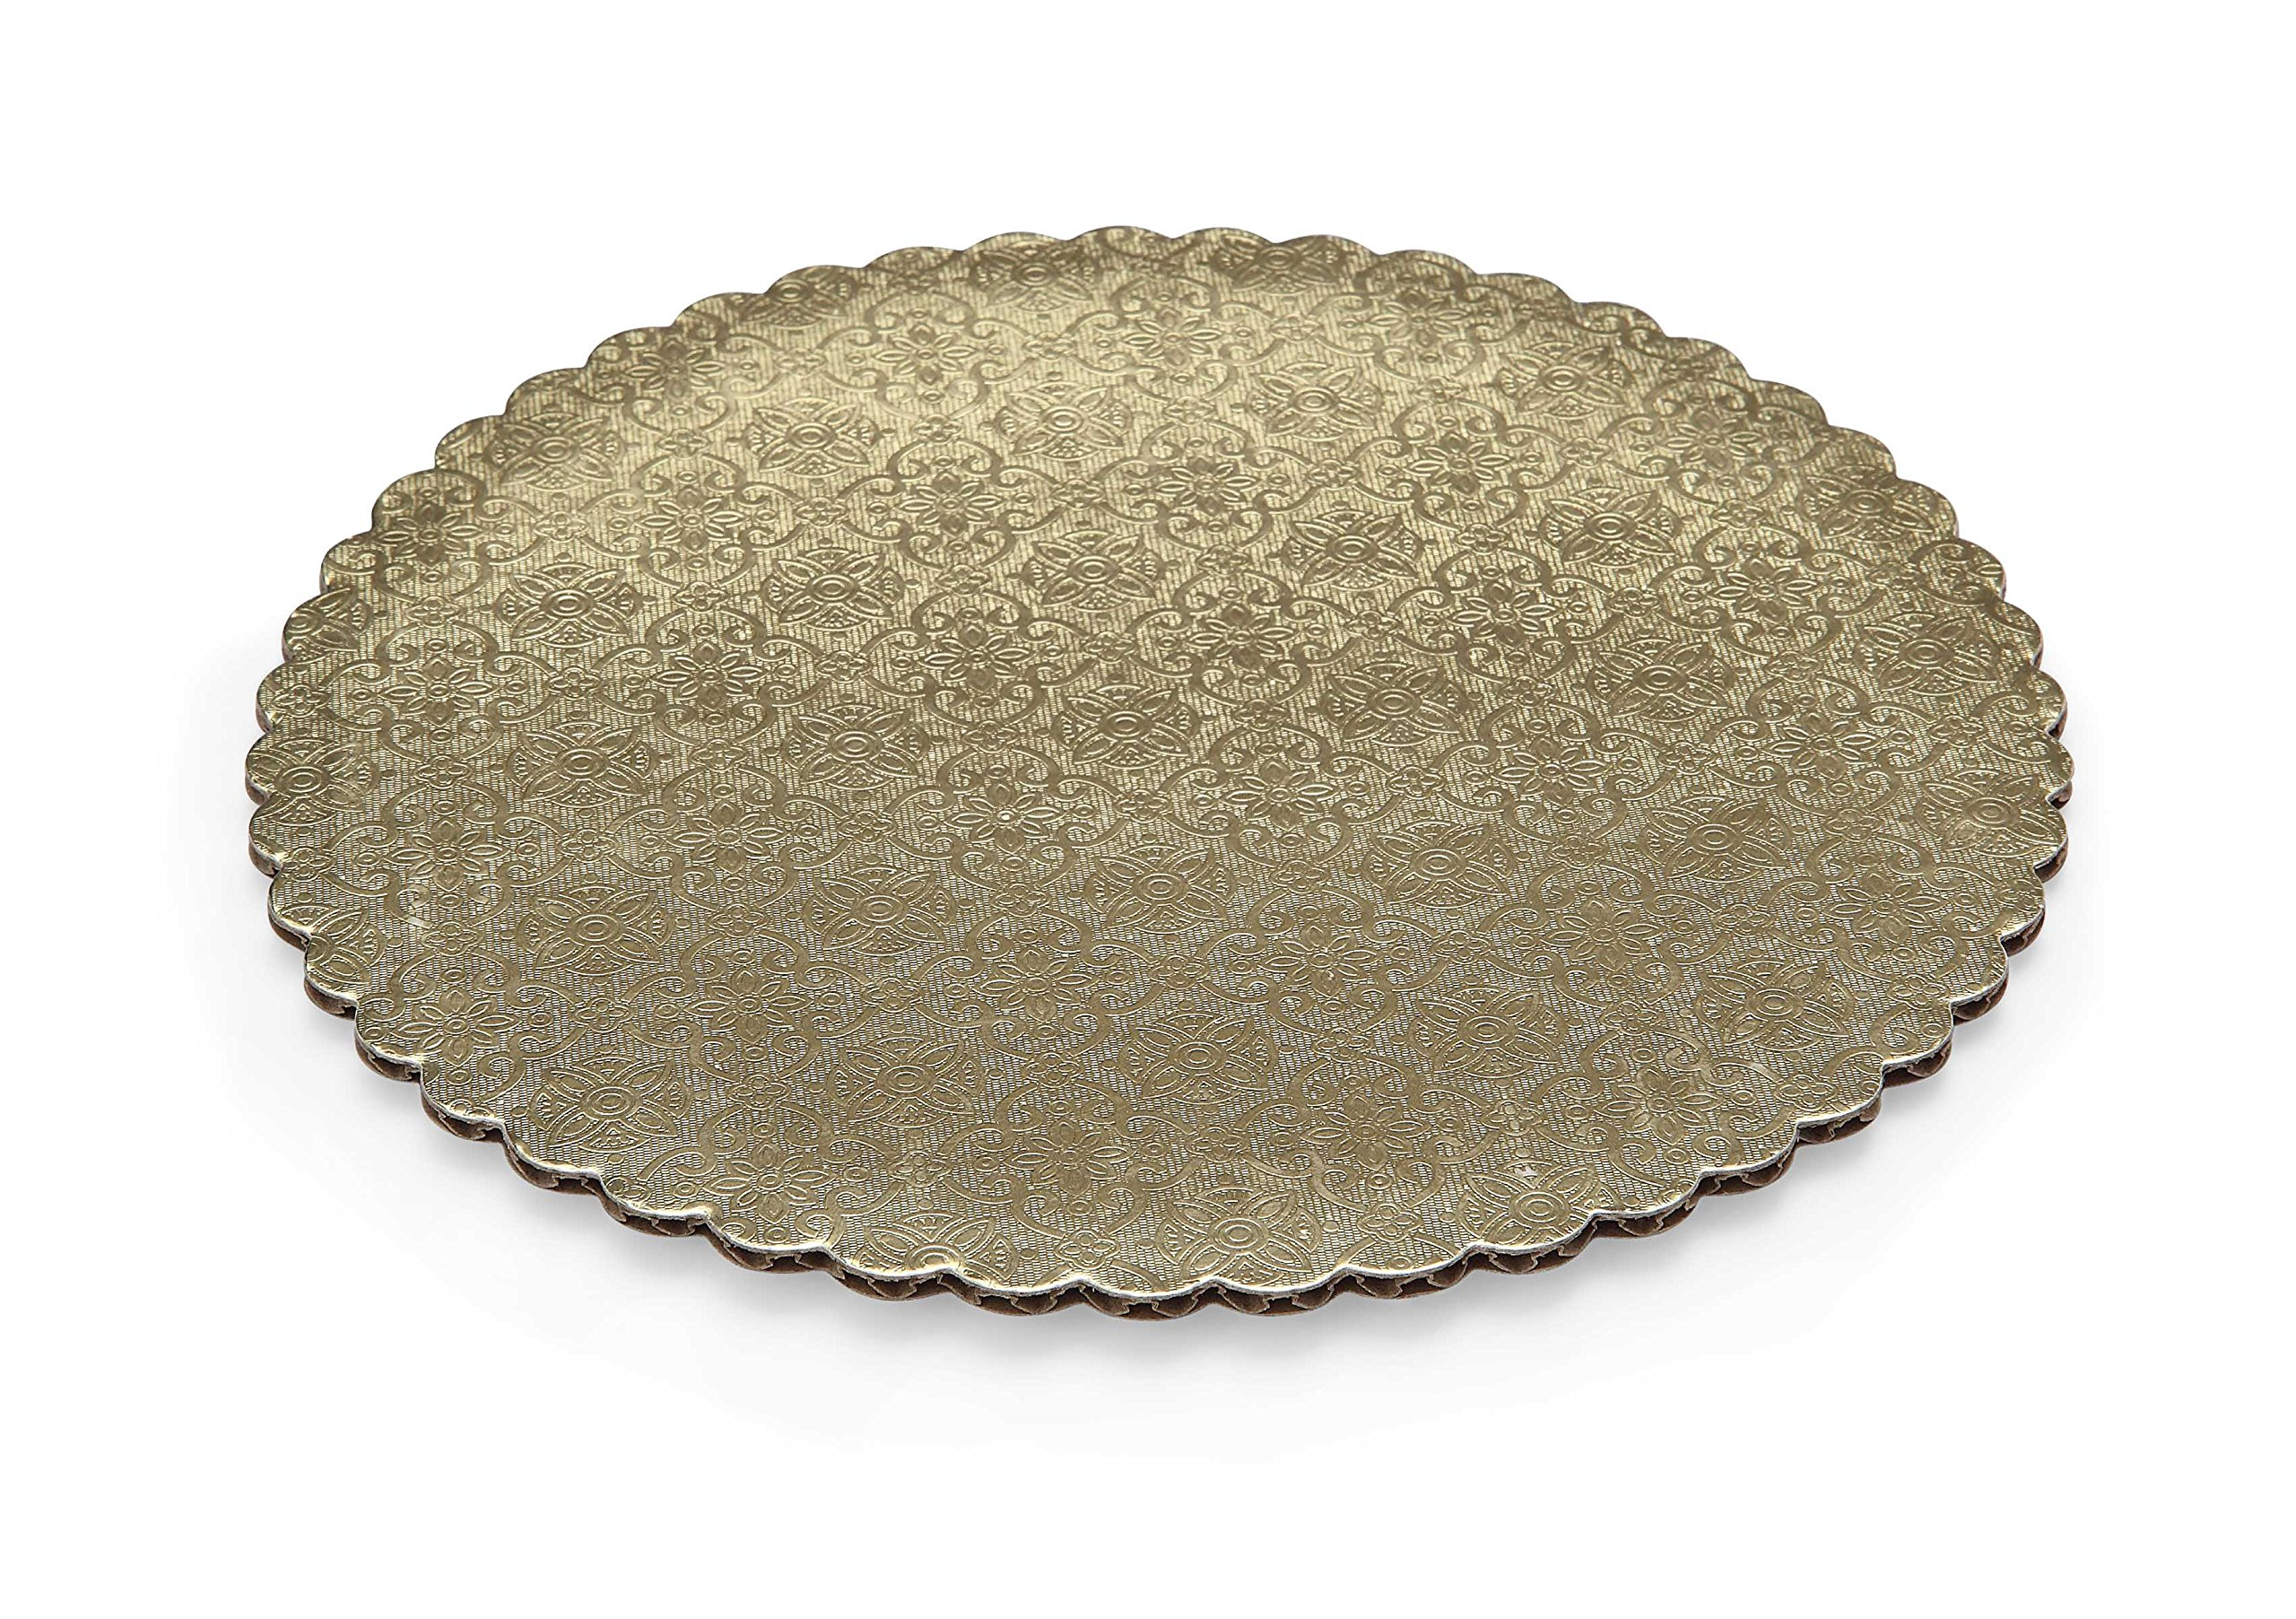 W PACKAGING WPGC12 12'' Gold Scalloped Edge Cake Circle, C-Flute, Corrugated with Coated Embossed Foil Paper (Pack of 100)